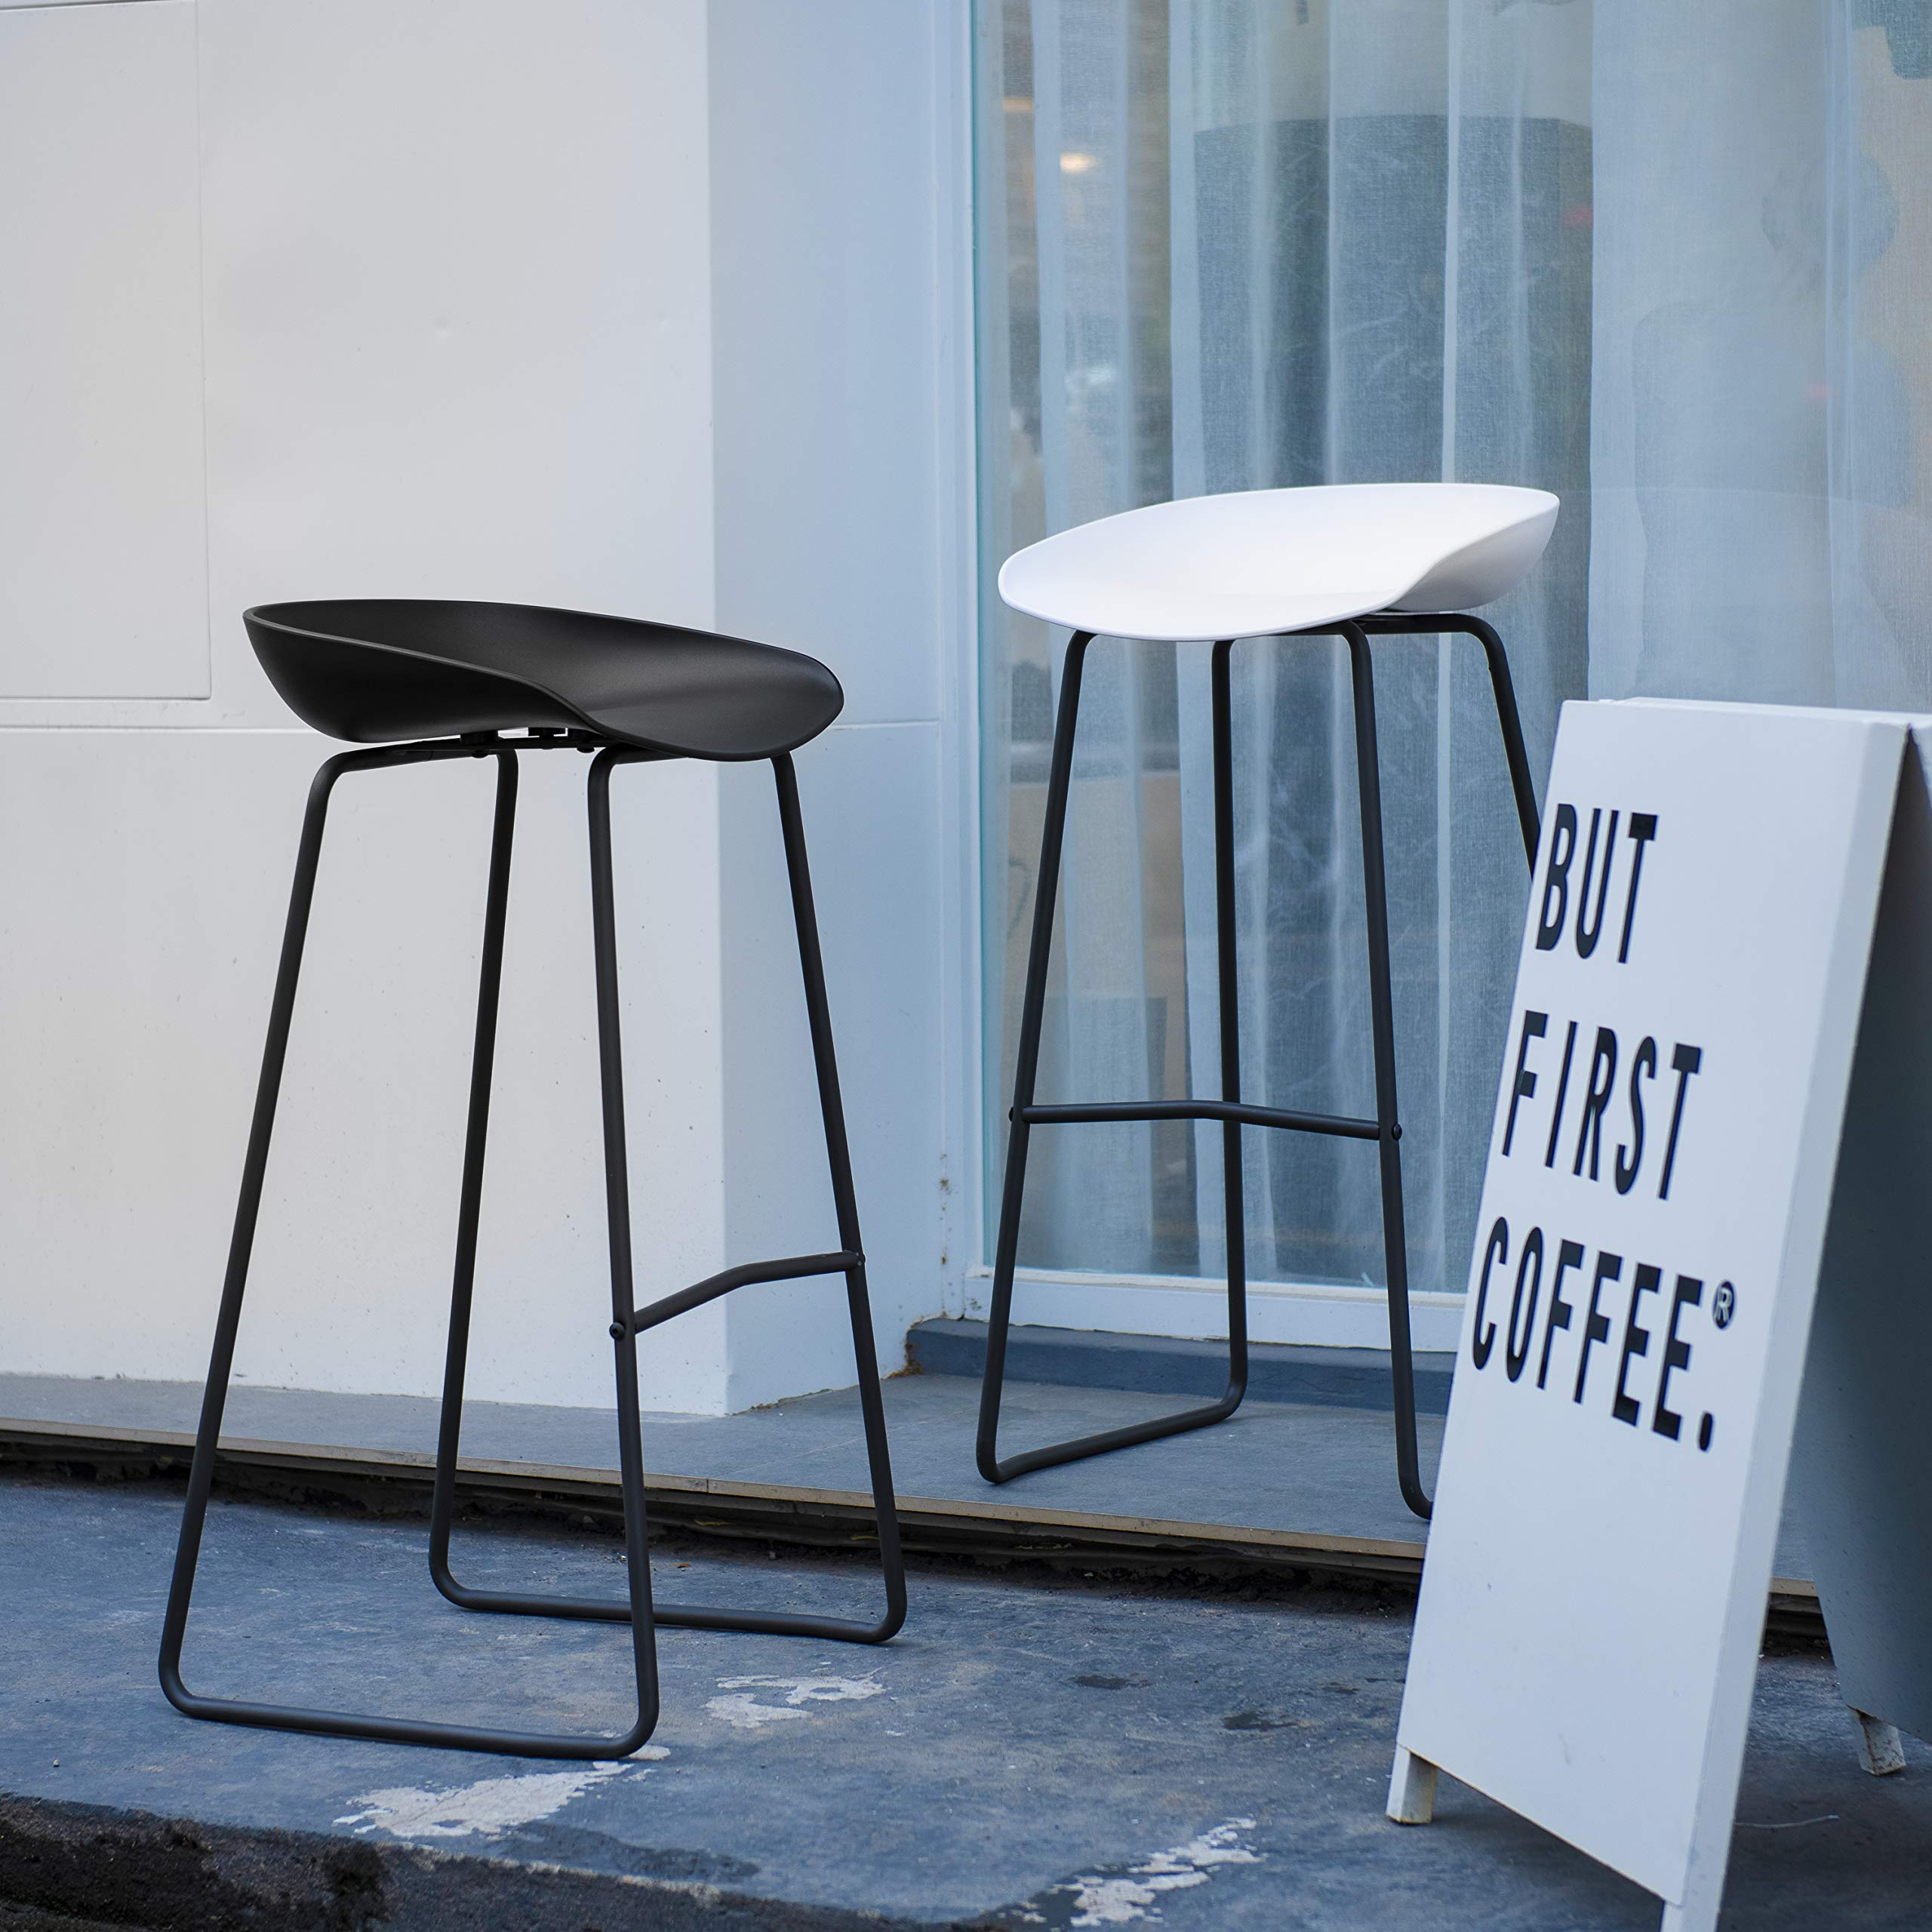 Art Leon Bar Stools Set of 2, Mid Century Modern Patio Counter Height Backless Plastic Seat Tall Bar Stools Chair with Metal Foot Rest for Outdoor/Indoor (White) by Art Leon